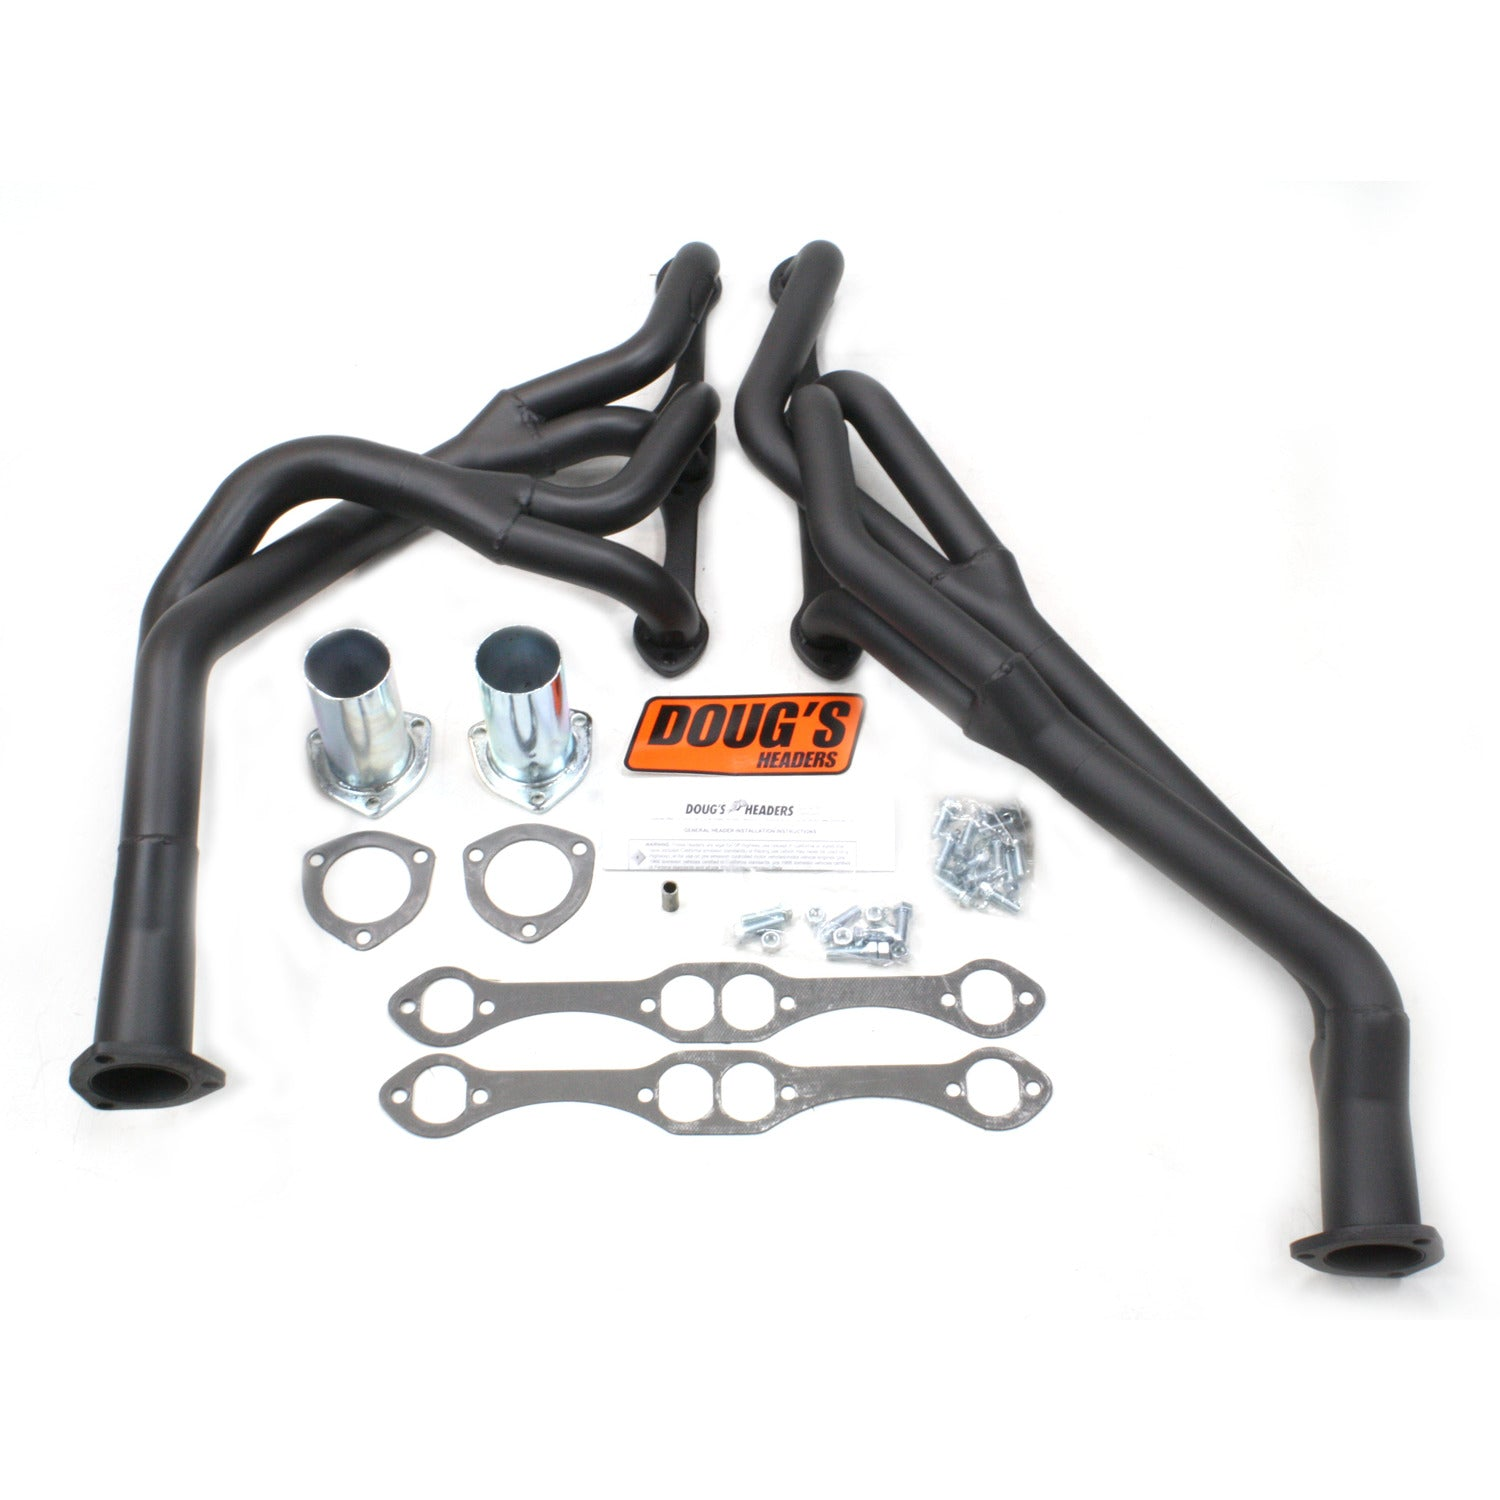 "Doug's Headers D376Y-B 1 5/8"" Tri-Y Header Chevrolet Chevelle Small Block Chevrolet 64-67 Hi-Temp Black Coating"